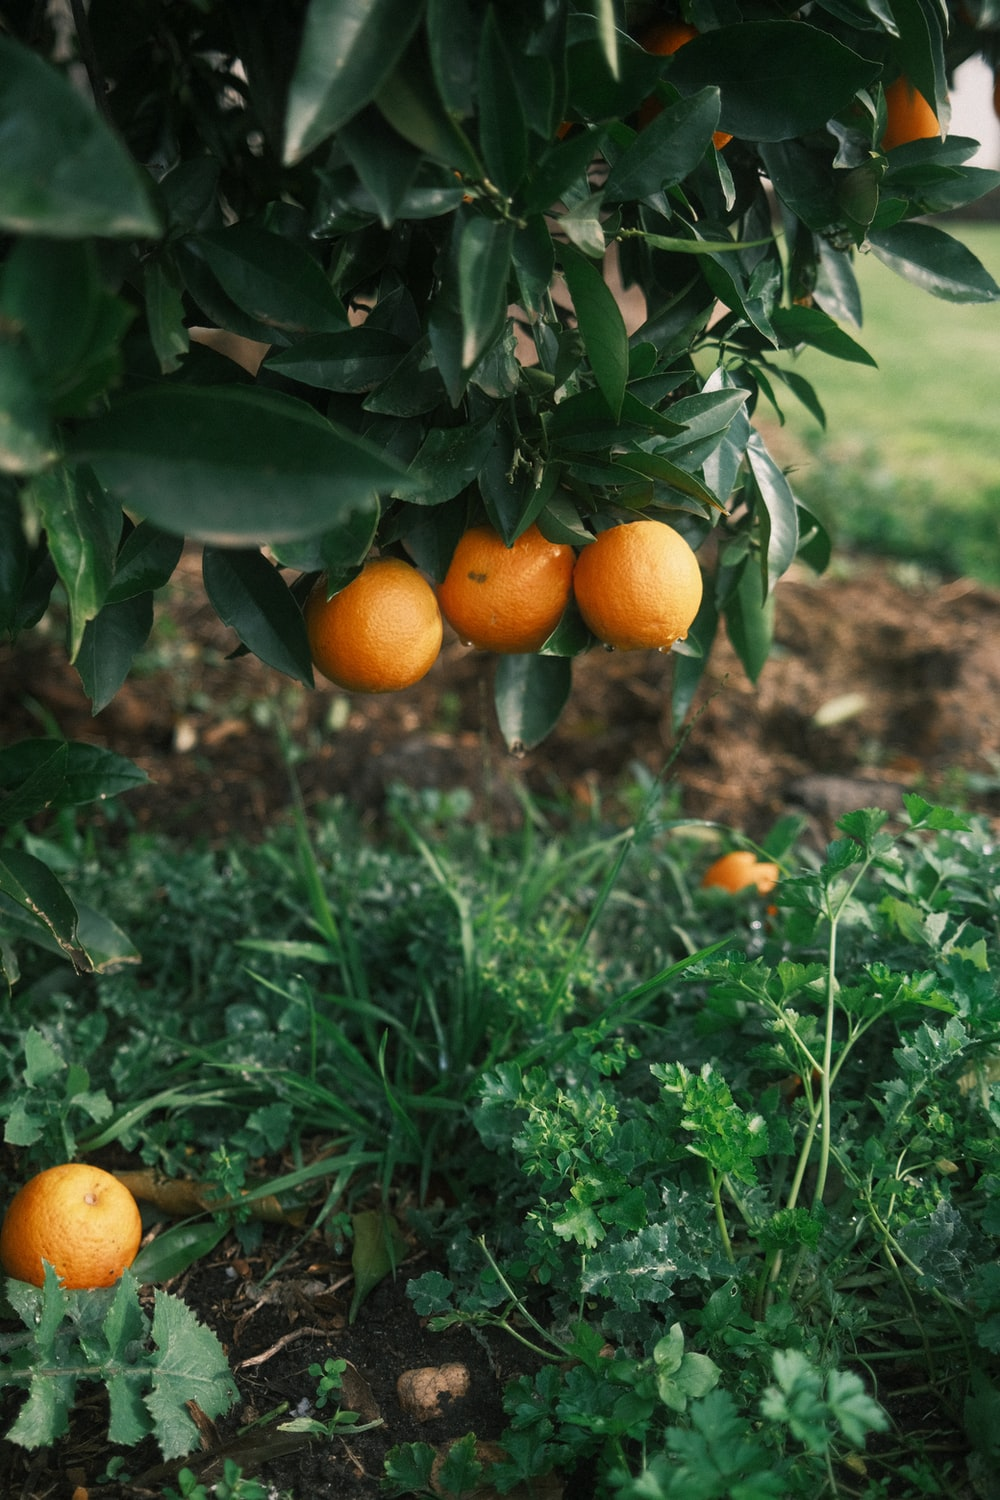 orange fruits on green grass during daytime